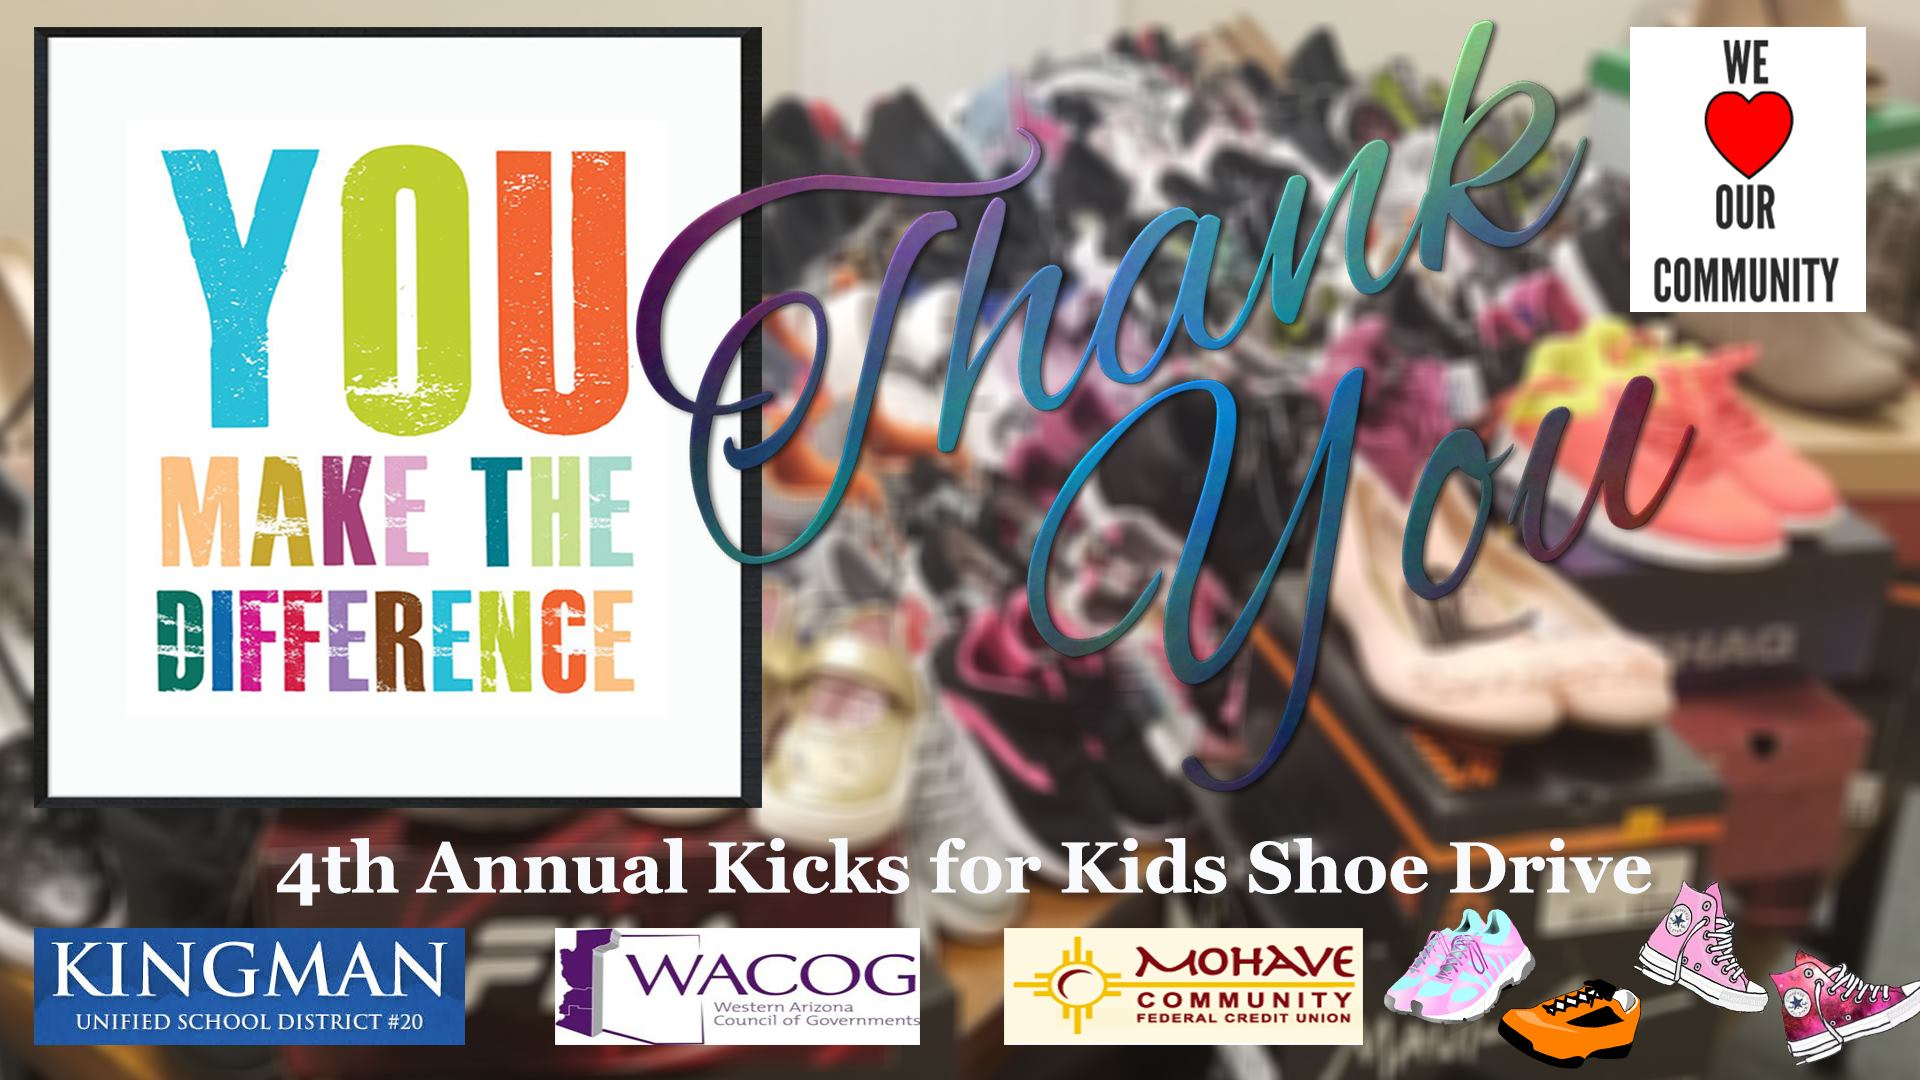 Our 4th Annual Kicks for Kids was a success! Thanks to the community, our members and local businessess, MCFCU was able to donate over 250 pairs of shoes to the Kingman Unified School District #20 and WACOG Headstart Children. We would like to say thank you to our members and the entire community for making this possible!